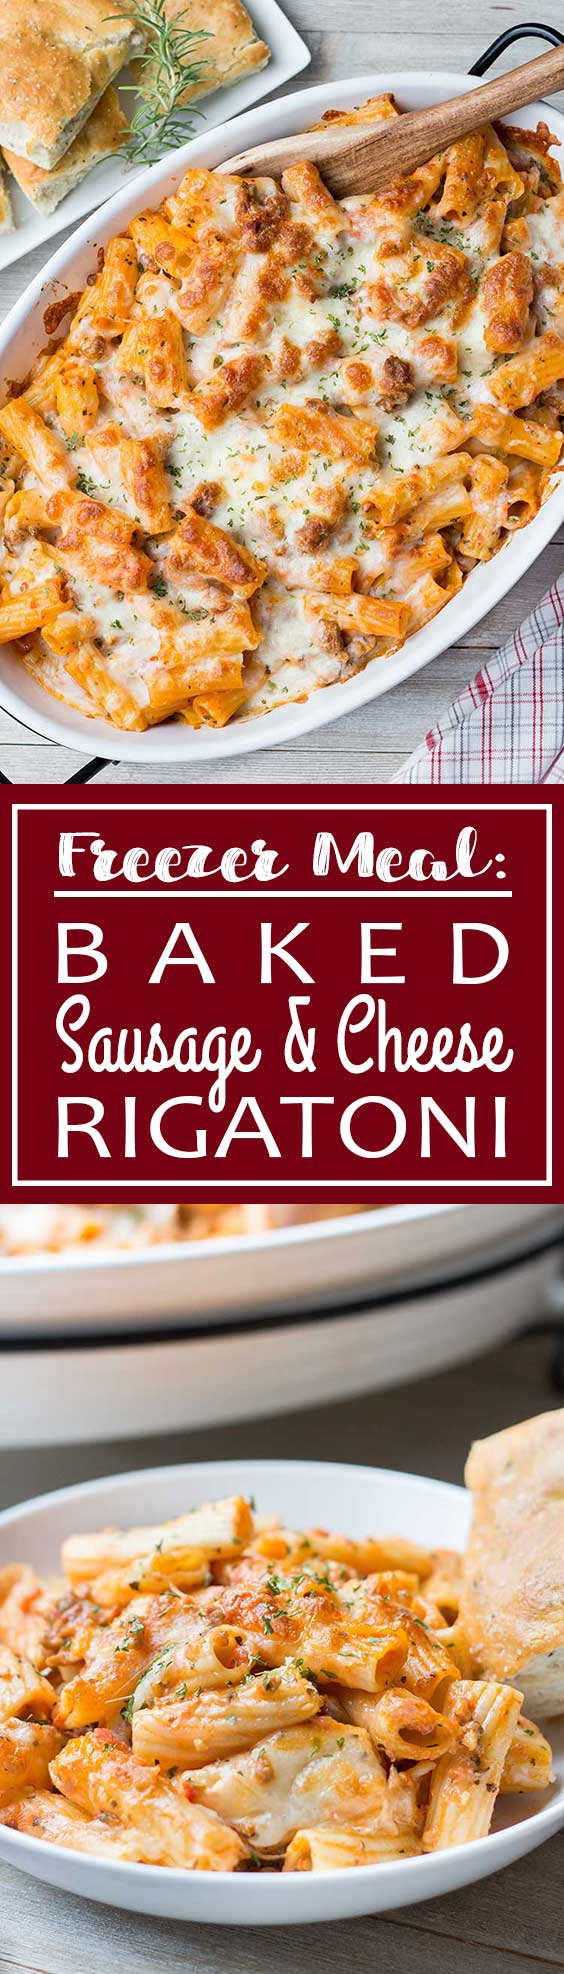 Freezer Meal: Baked Sausage & Cheese Rigatoni | It's meaty, it's cheesy and it's loaded with delicious carbs!! Great for when your stressed and spaghetti and meatballs just doesn't cut it! This is a fabulous meal to have in your freezer all ready to go!